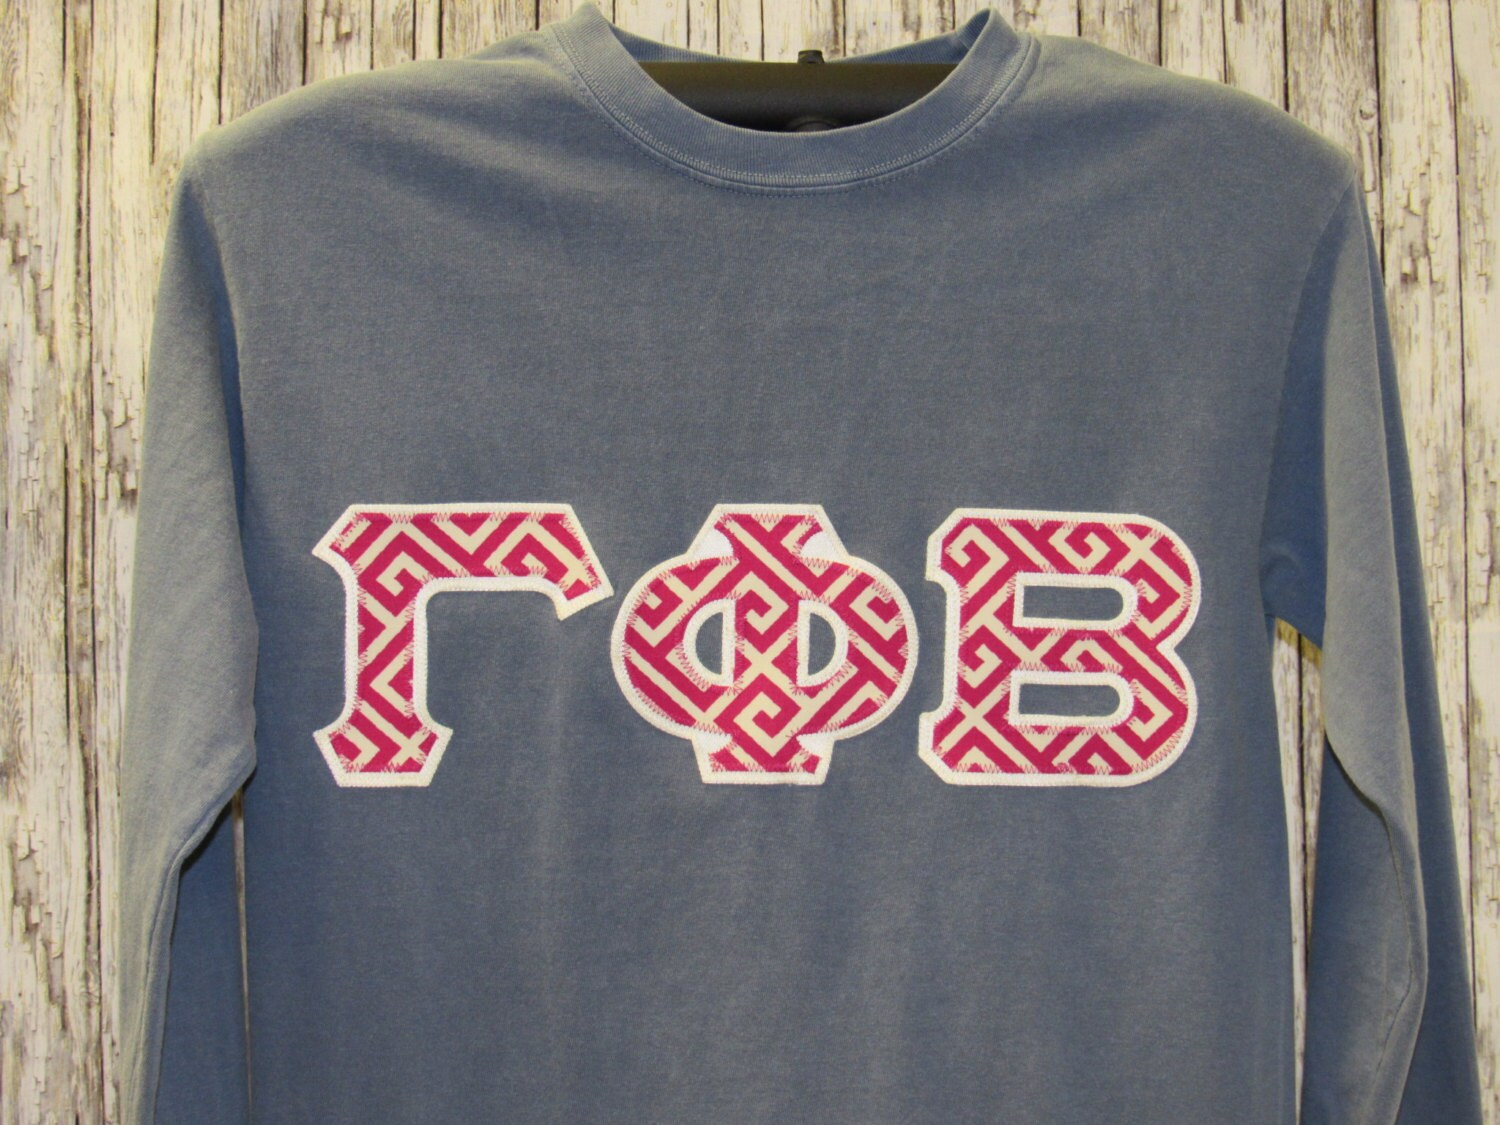 Sorority Letter Shirt, Blue Jean (color) Shirt in VARIOUS STYLES and ...